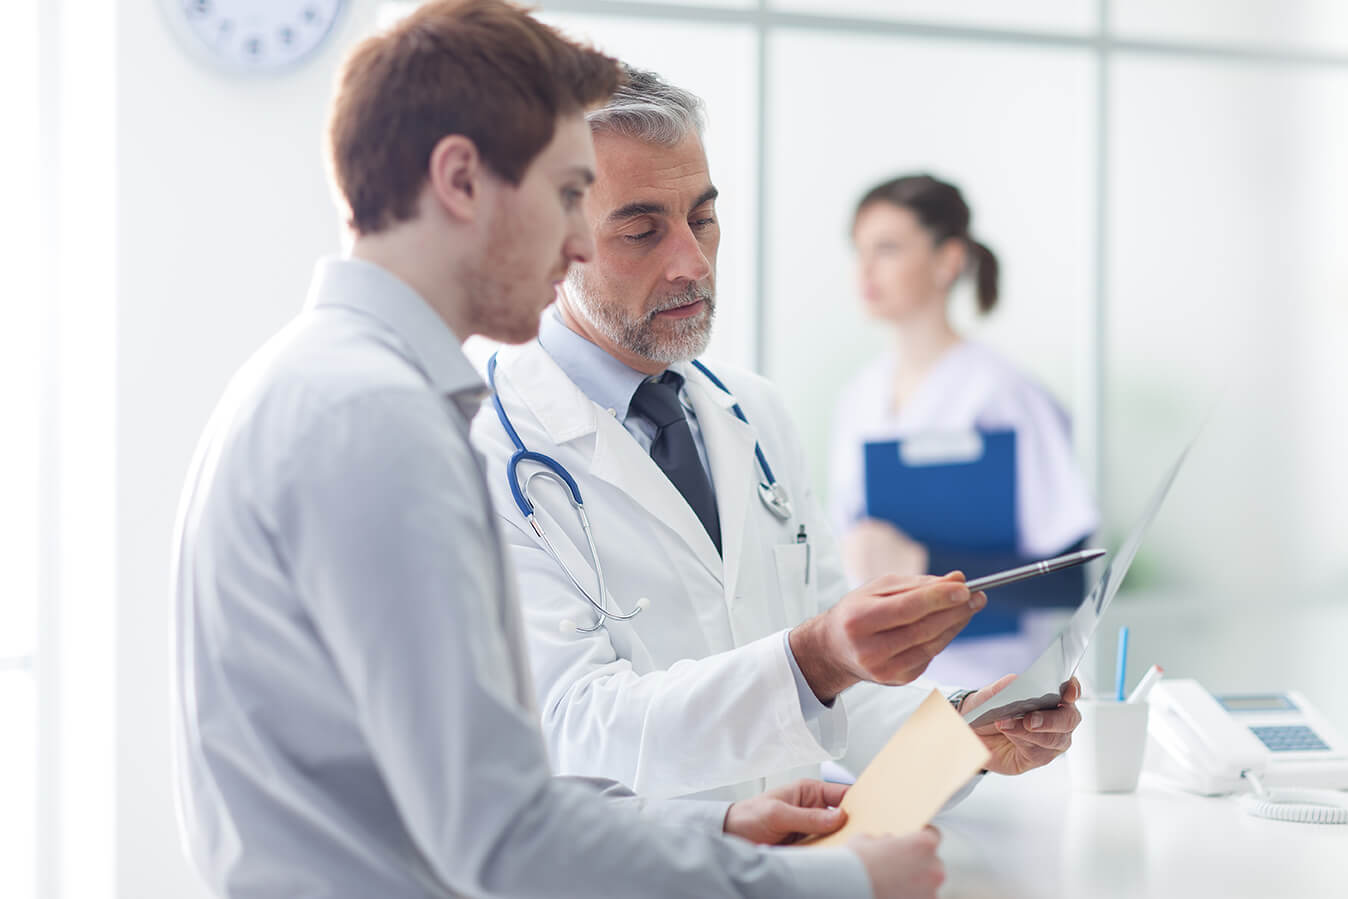 Platform Built for Healthcare Entrepreneurs and Executives to Accelerate Growth.